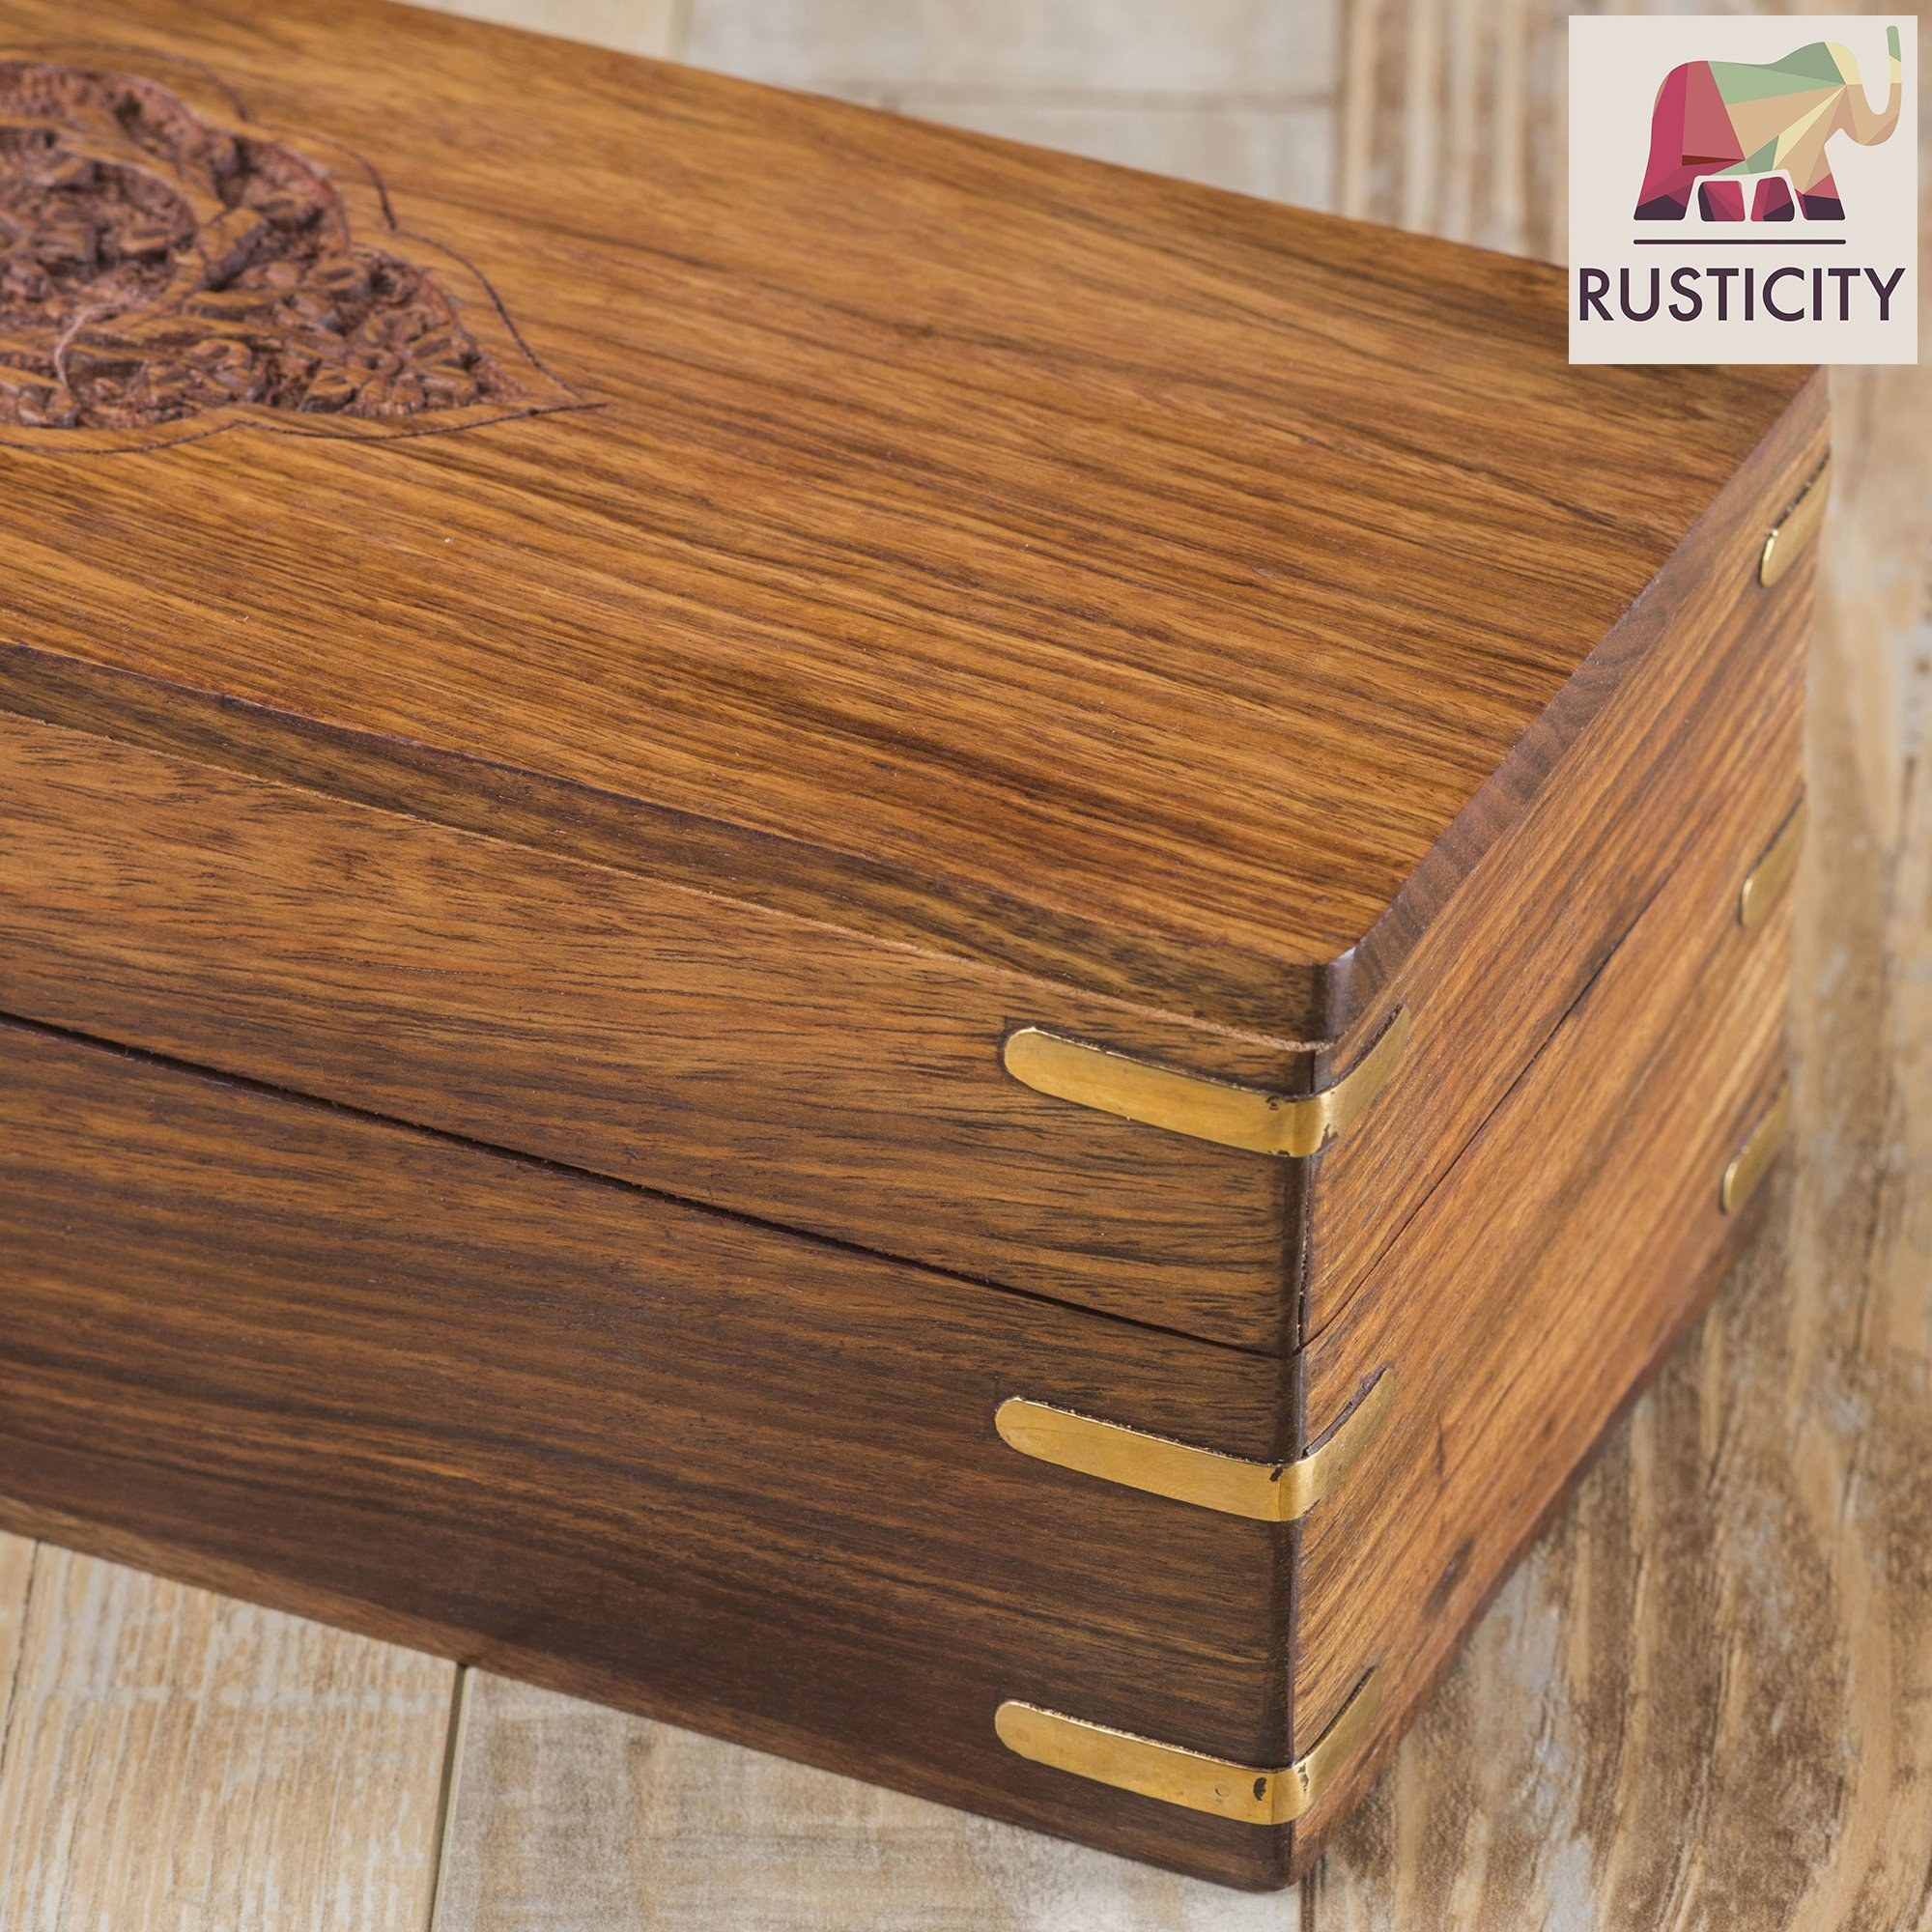 Rusticity Wooden Tea Box/Spice Organizer with Lid - 8 Slots | Handmade | (12x4.5 in) by Rusticity (Image #3)